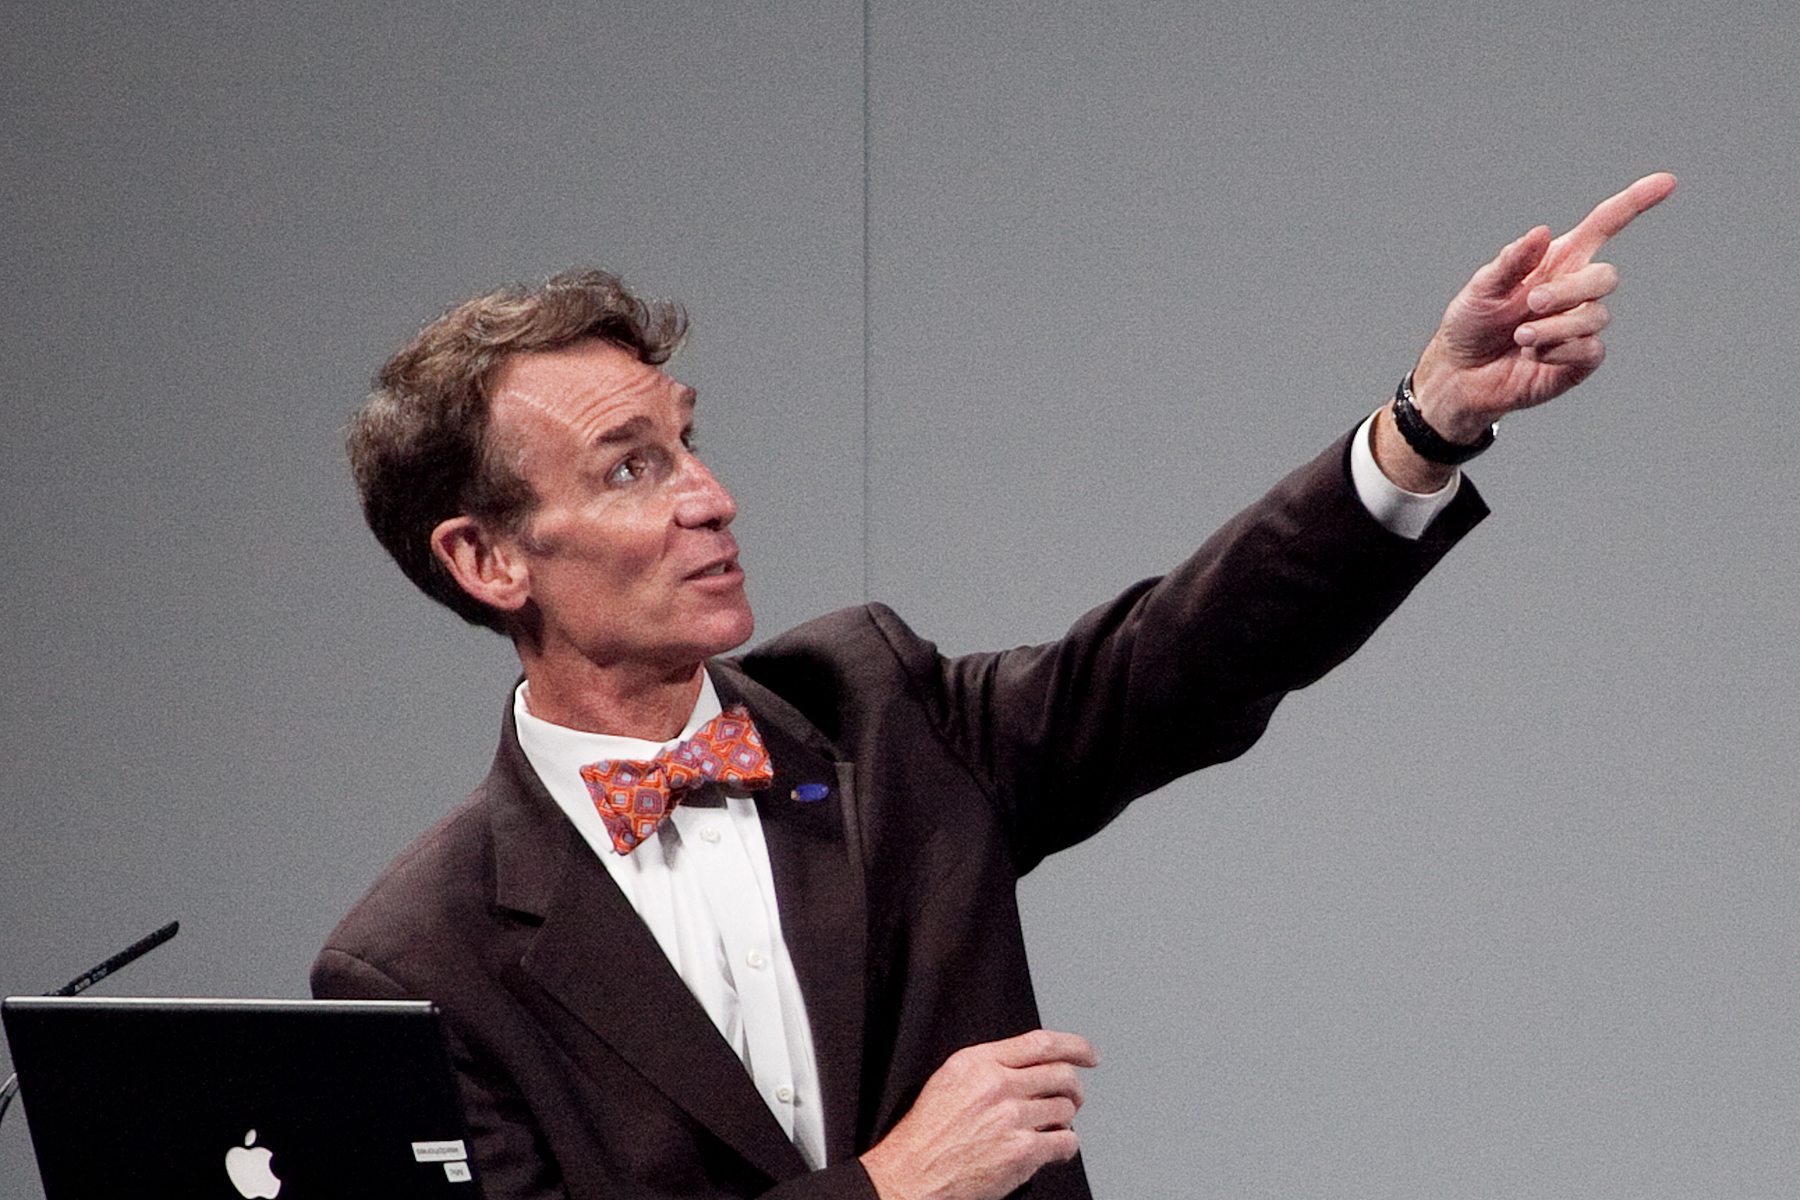 Bill Nye Brings Science To Uic Forum on Physics Lab Safety Rules